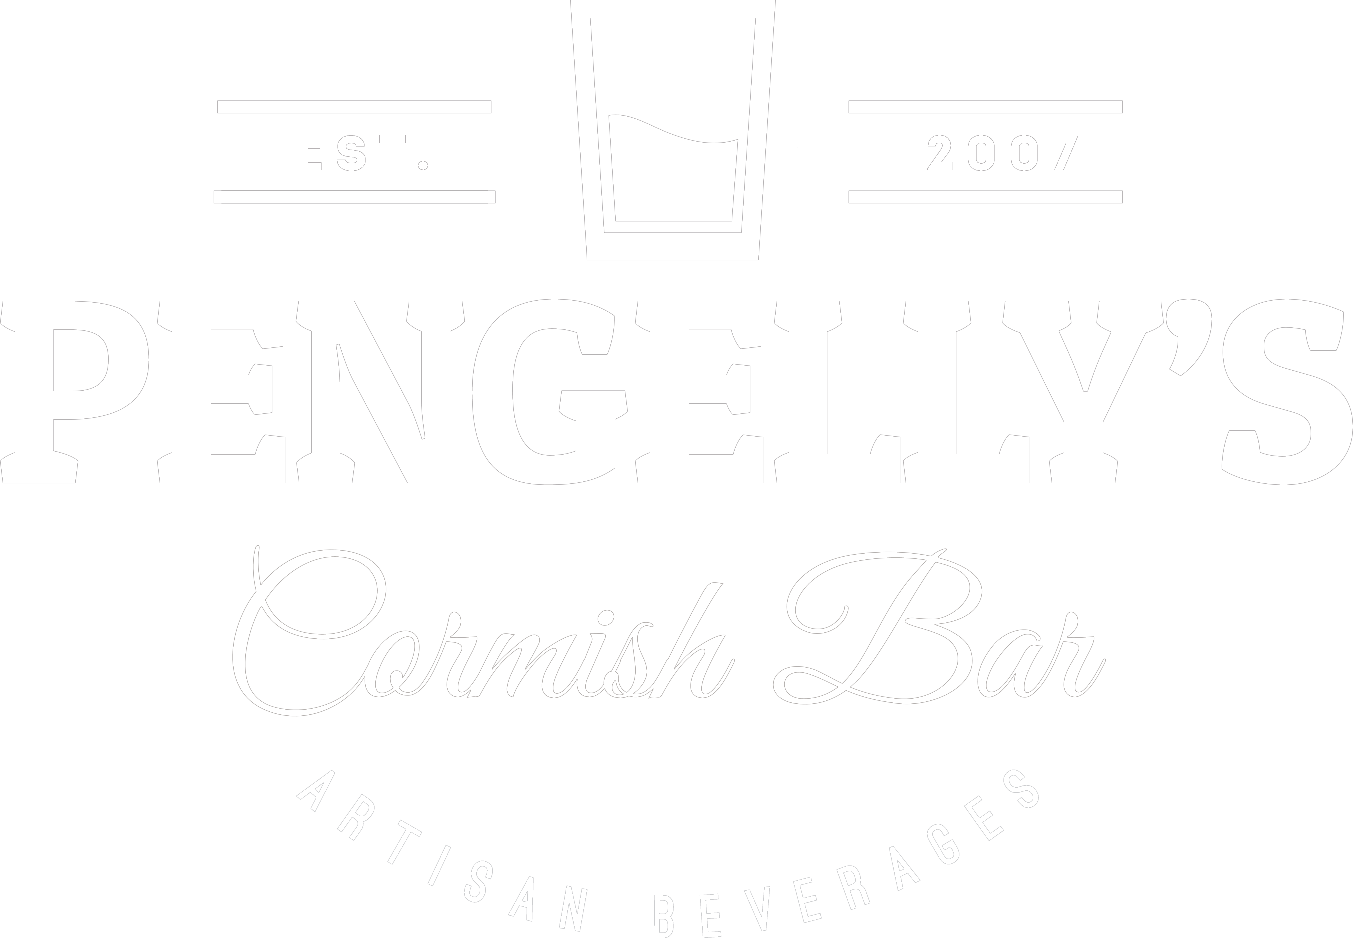 Pengelly's Cornish Bar Logo